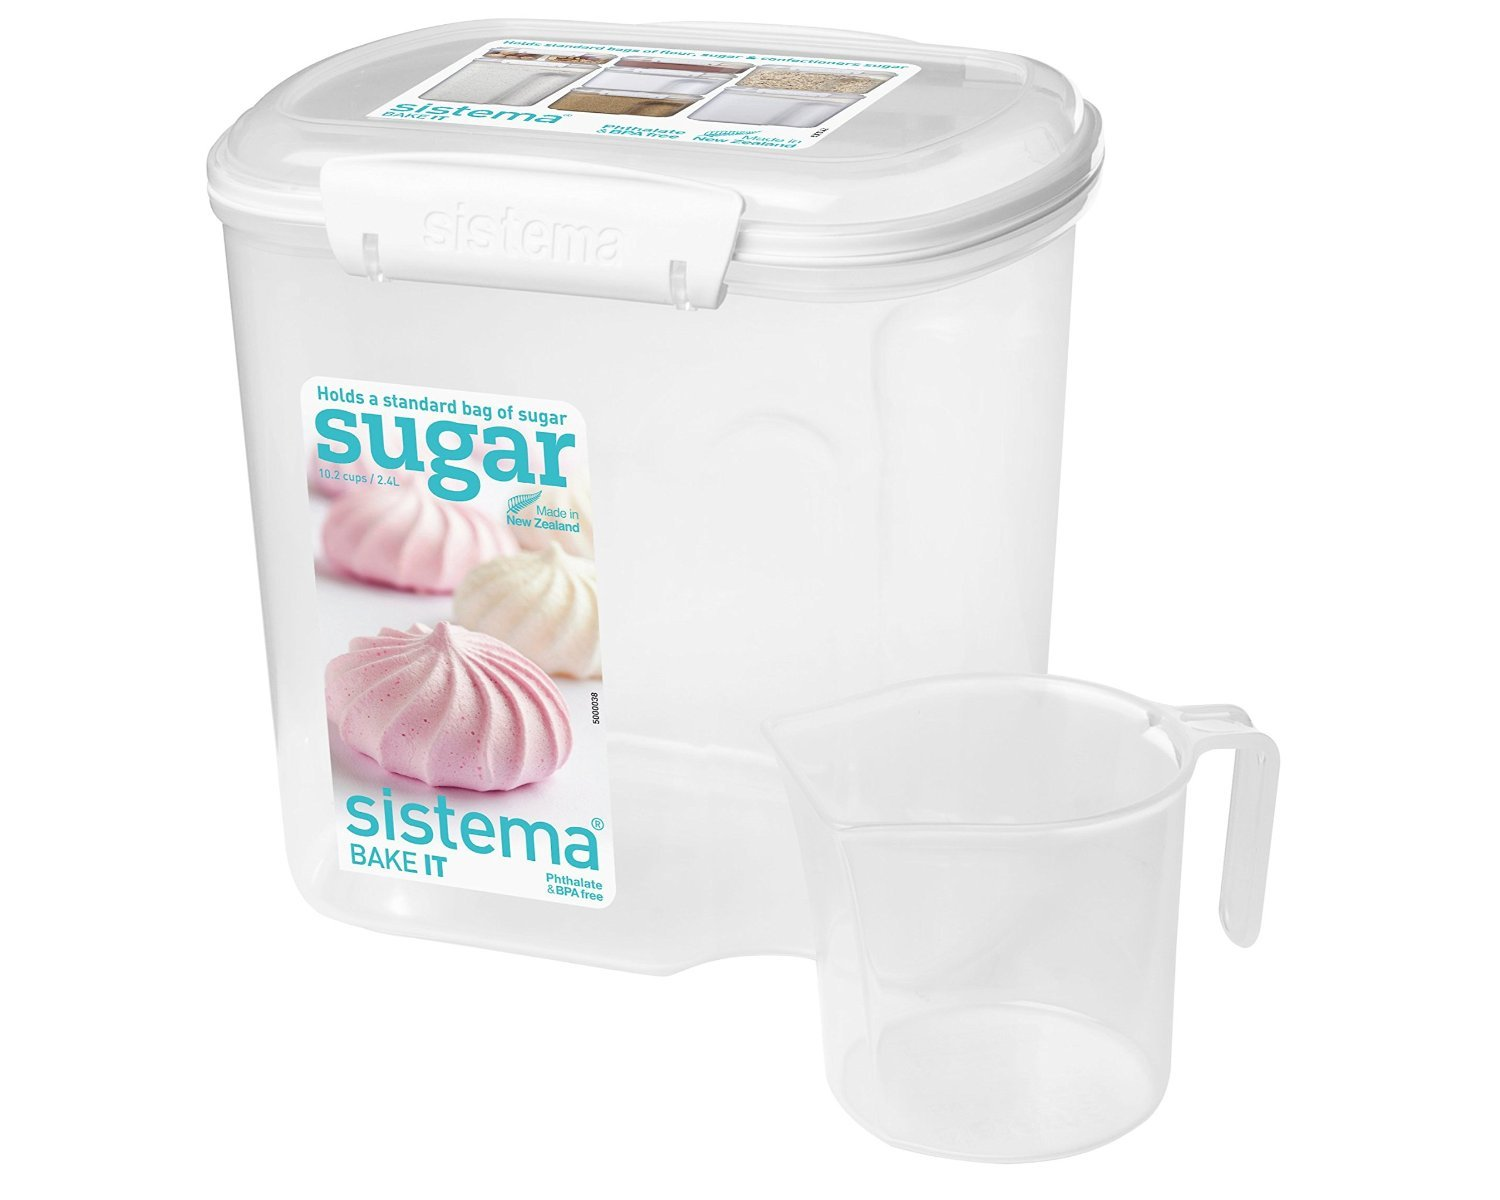 Sistema Klip It Bakery Storage Container With Scoop, 24 L. How Much Does A Fitness Trainer Make. Starplus Sts Phone System Car Isurance Quotes. Open Bank Account Online Without Deposit. Good Community Colleges Red Canoe Credit Union. Cloud Phone Systems For Small Business. Diminished Value Georgia Law. Rn To Paramedic Program Auto Post To Facebook. Liability Insurance For Non Profit Organization